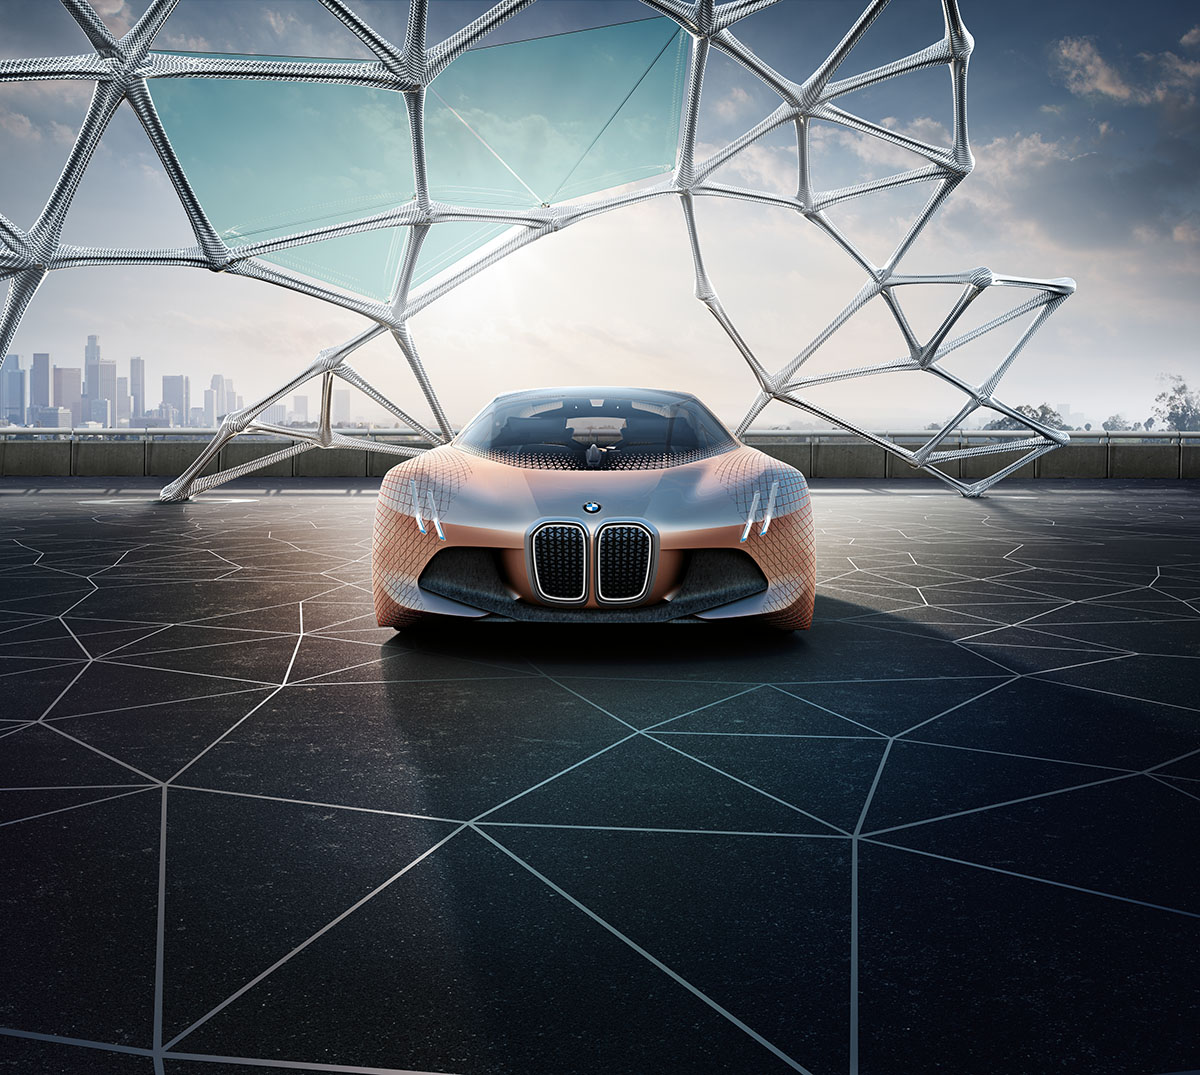 The Car of the Future: The BMW Vision Next 100 5